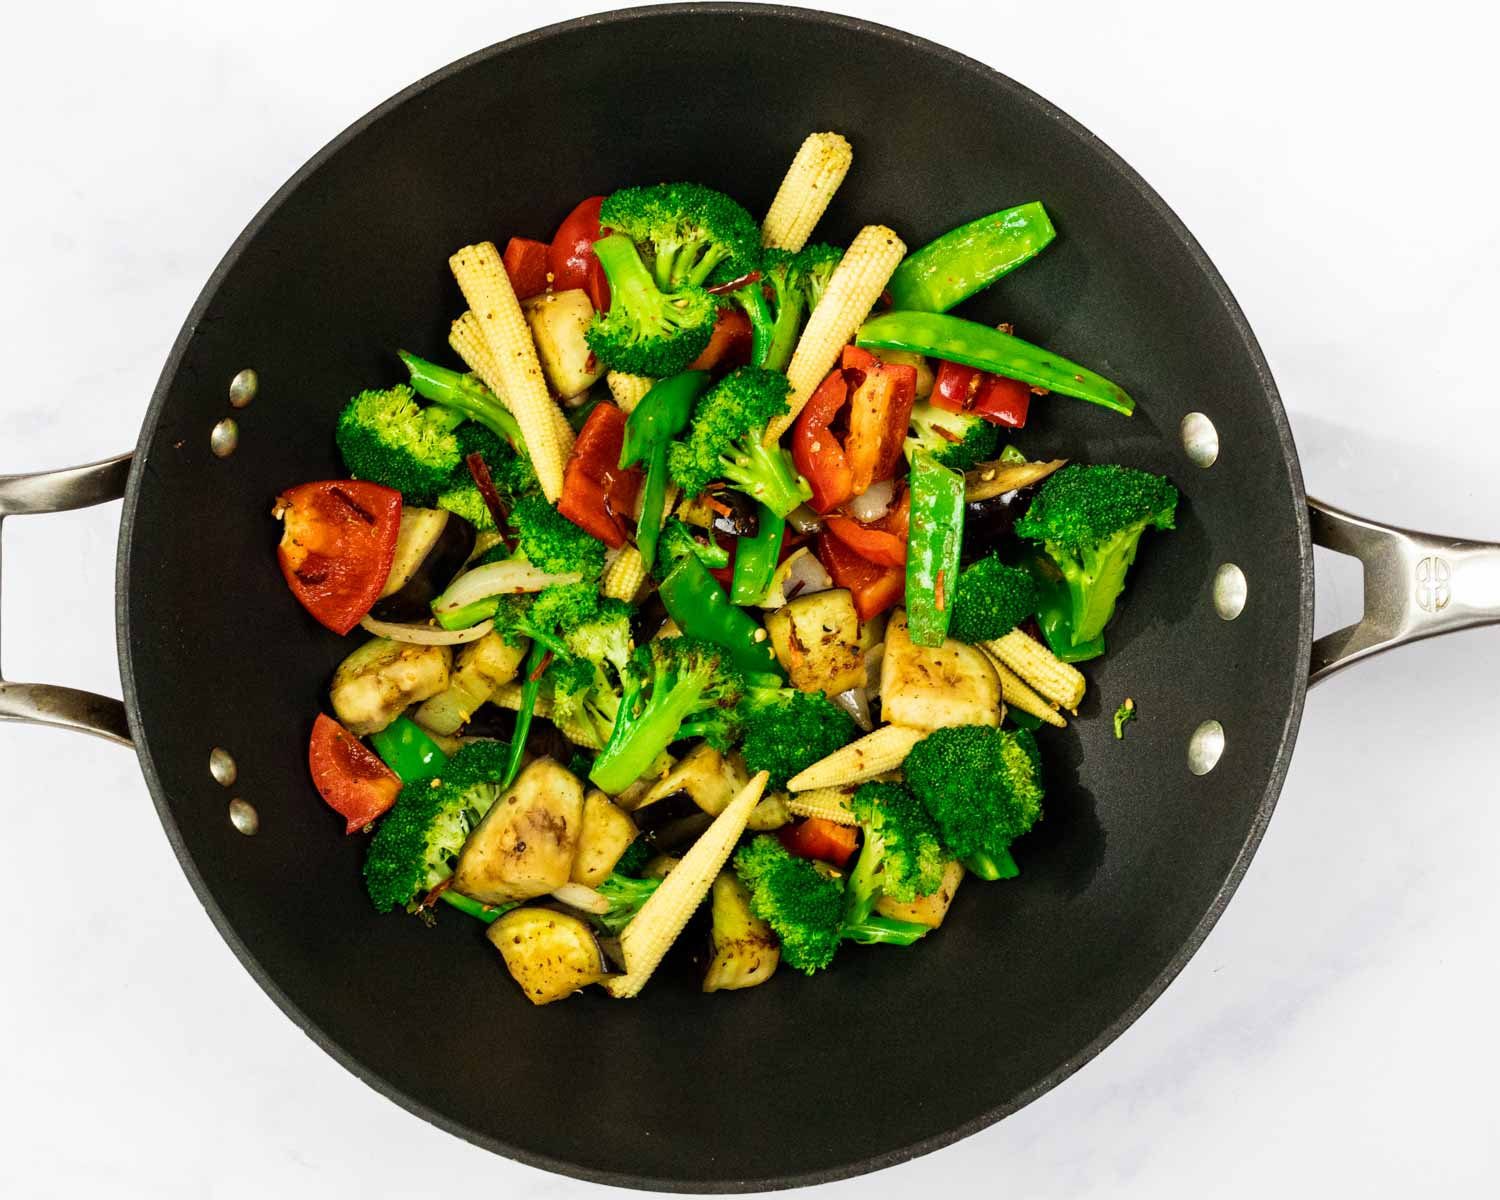 Stir-fried vegetables in a wok.